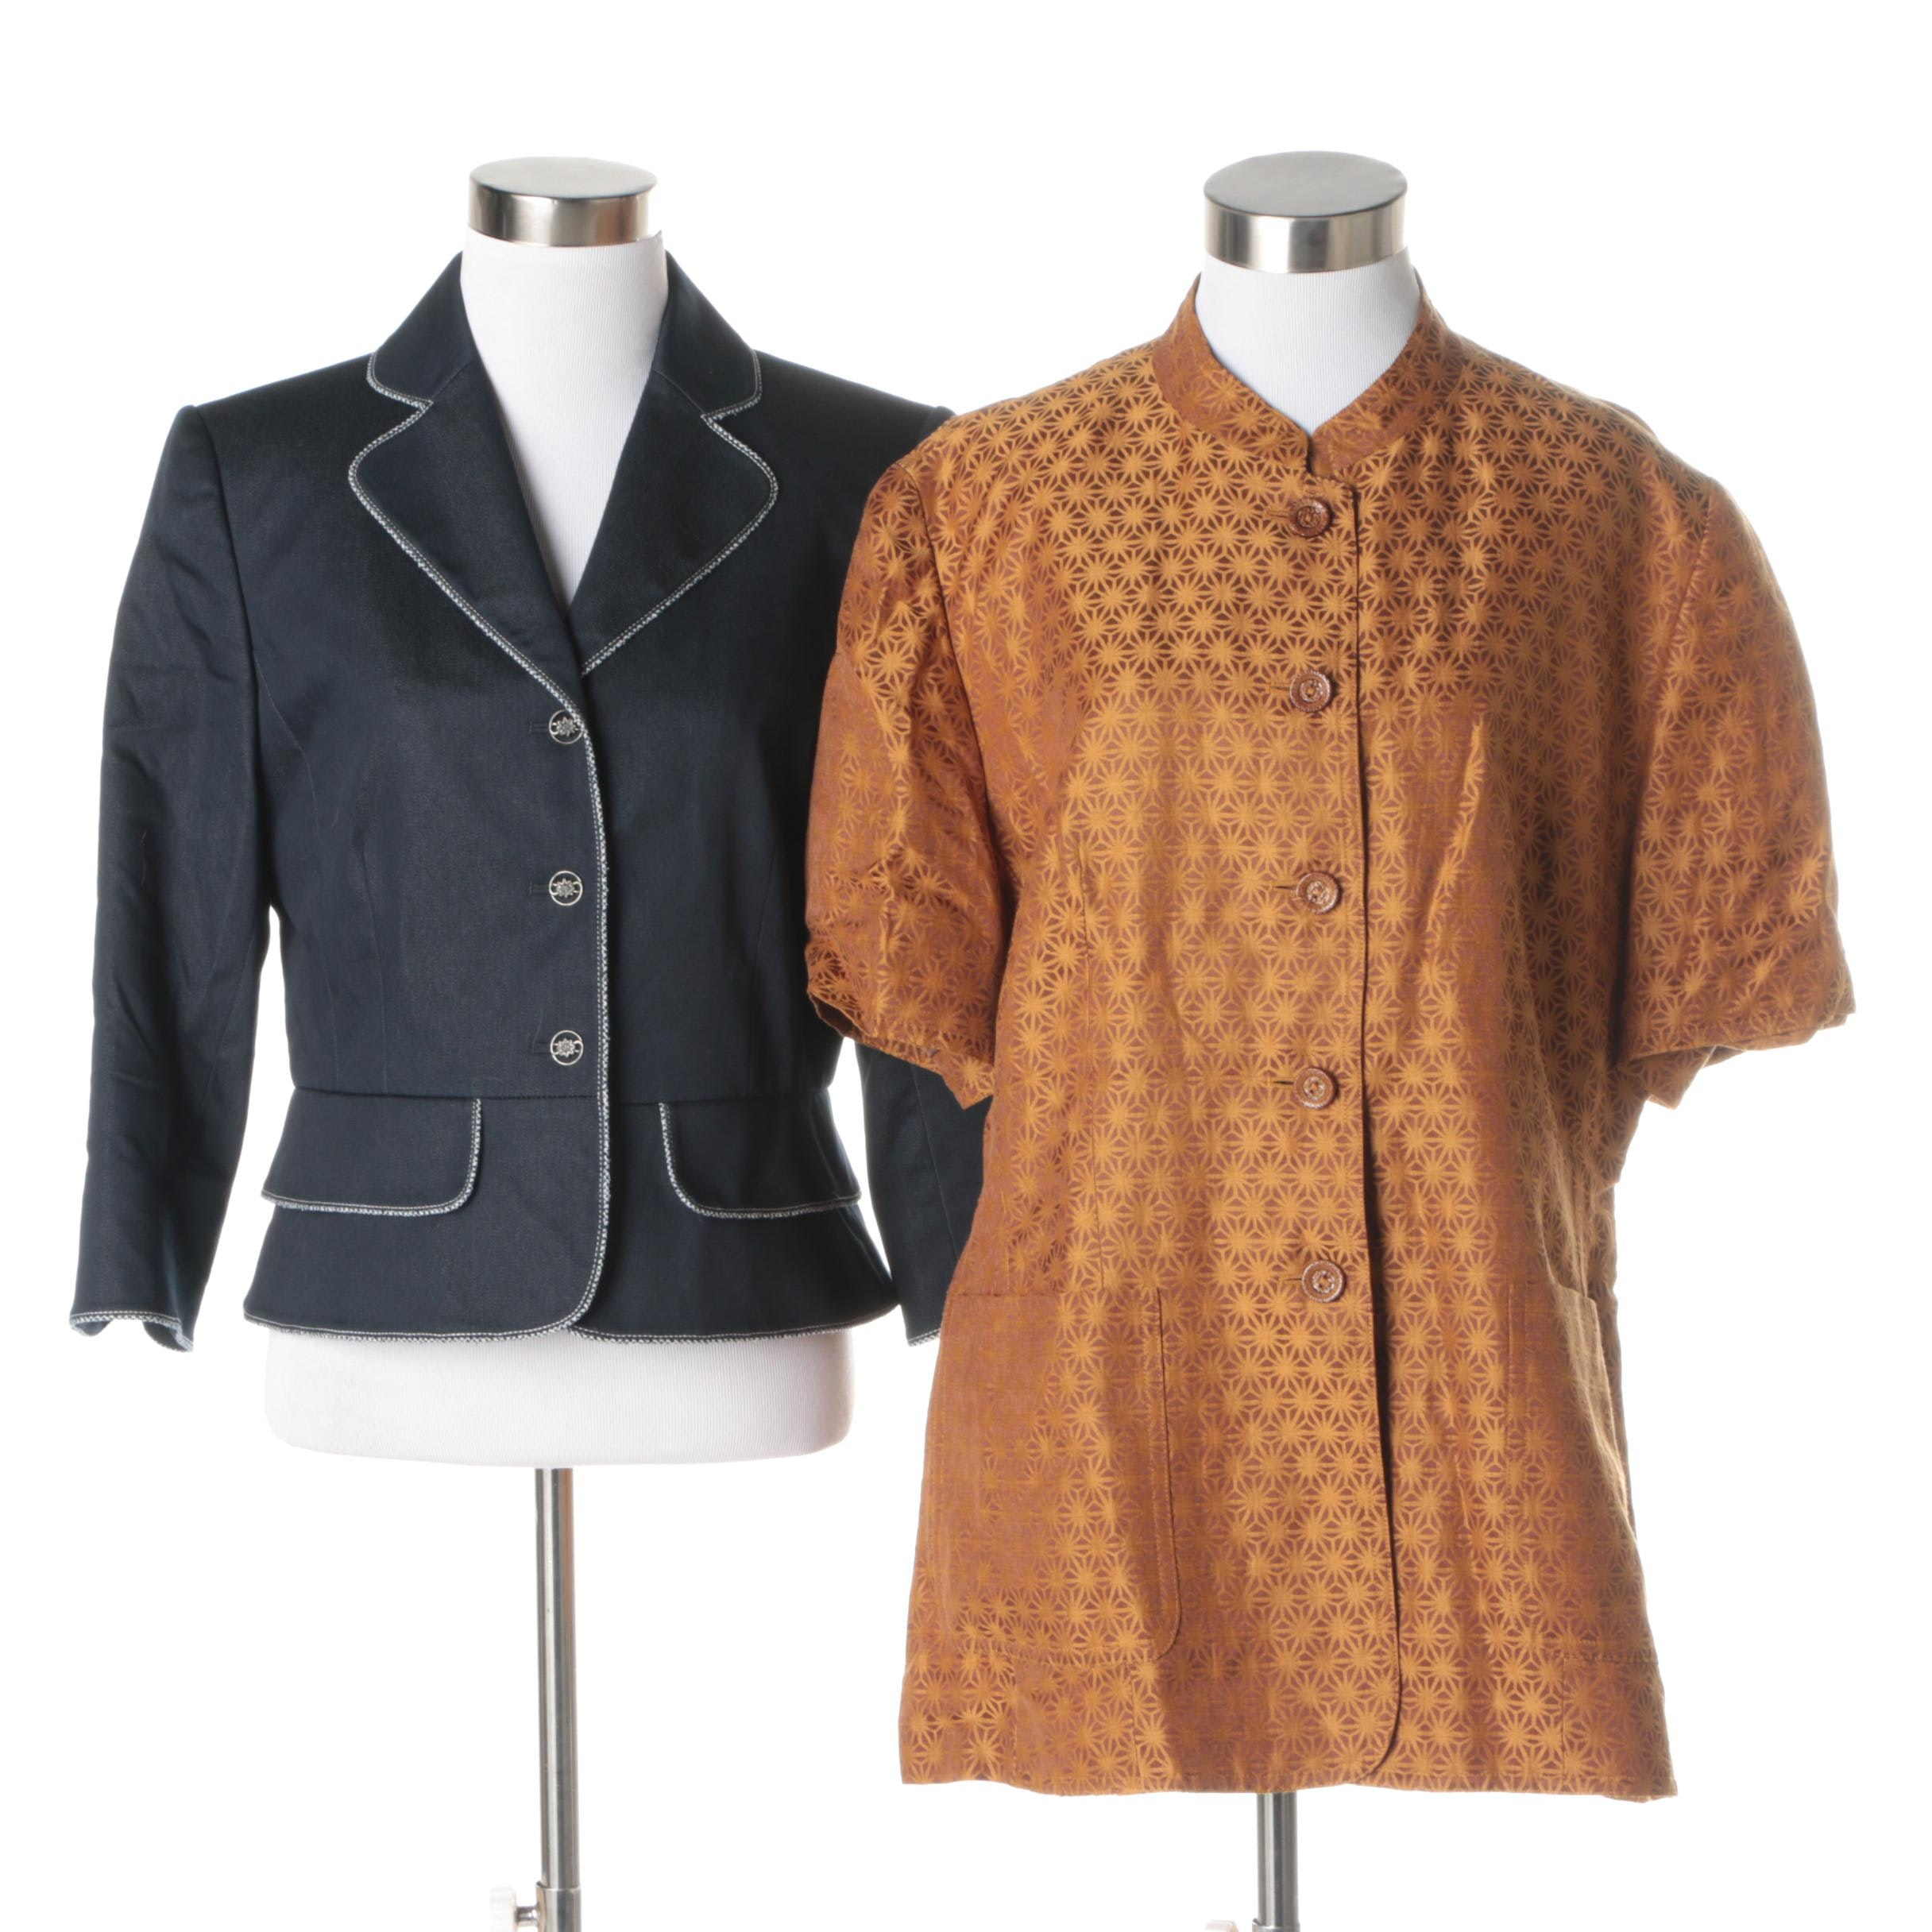 Women's Suit Jacket and Button-Up Shirt Including Escada Margaretha Ley